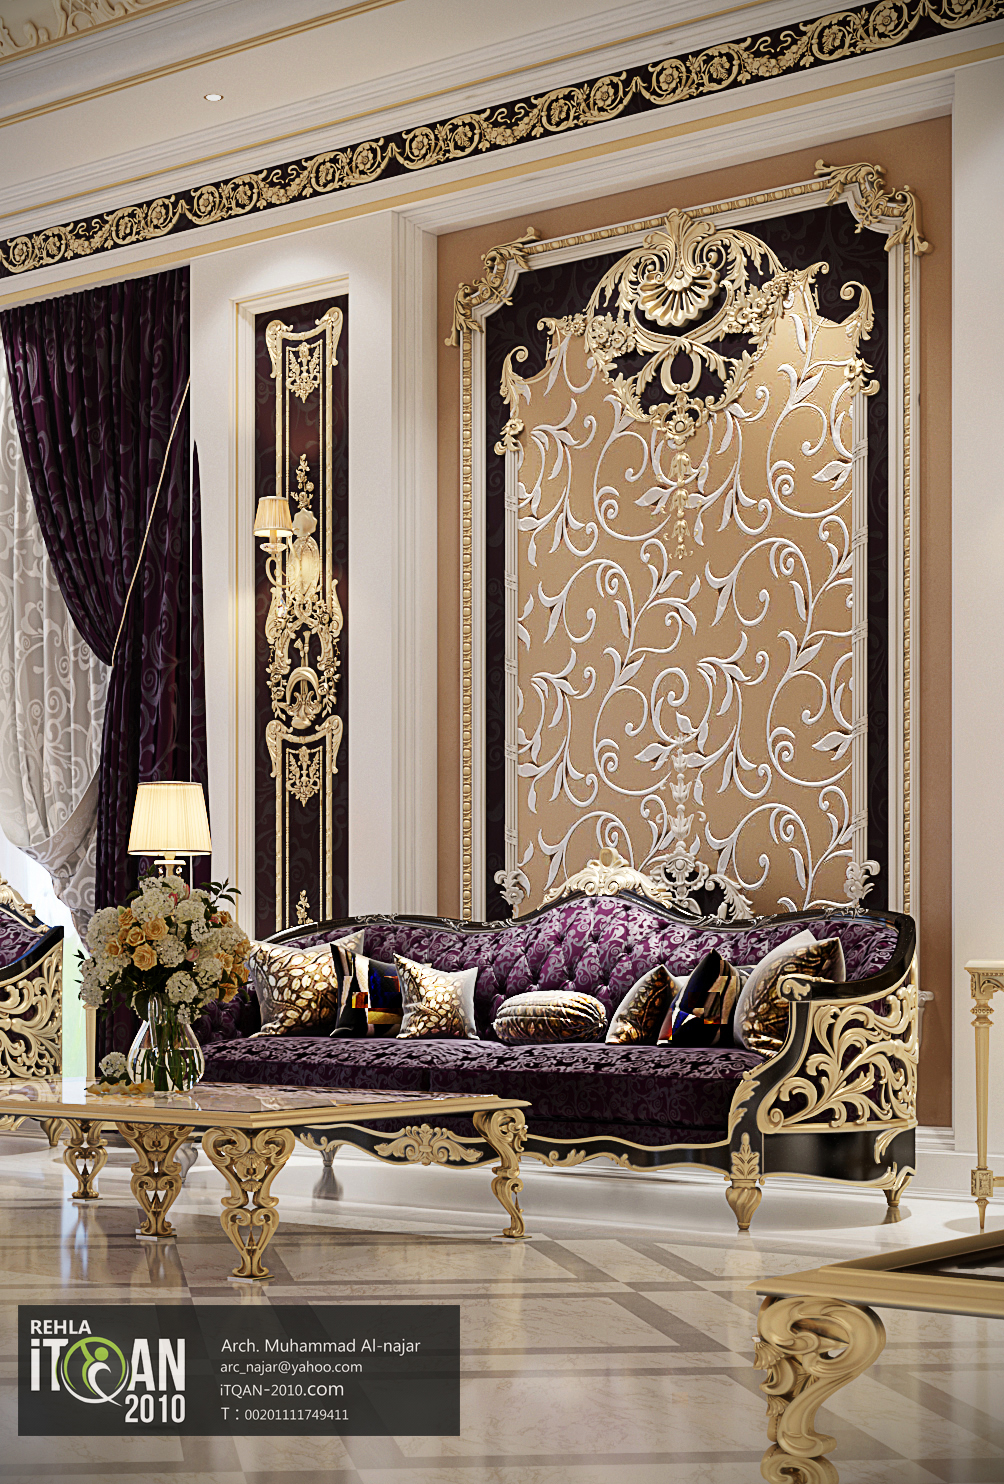 Classic majles - royal style - with golden touch - uae